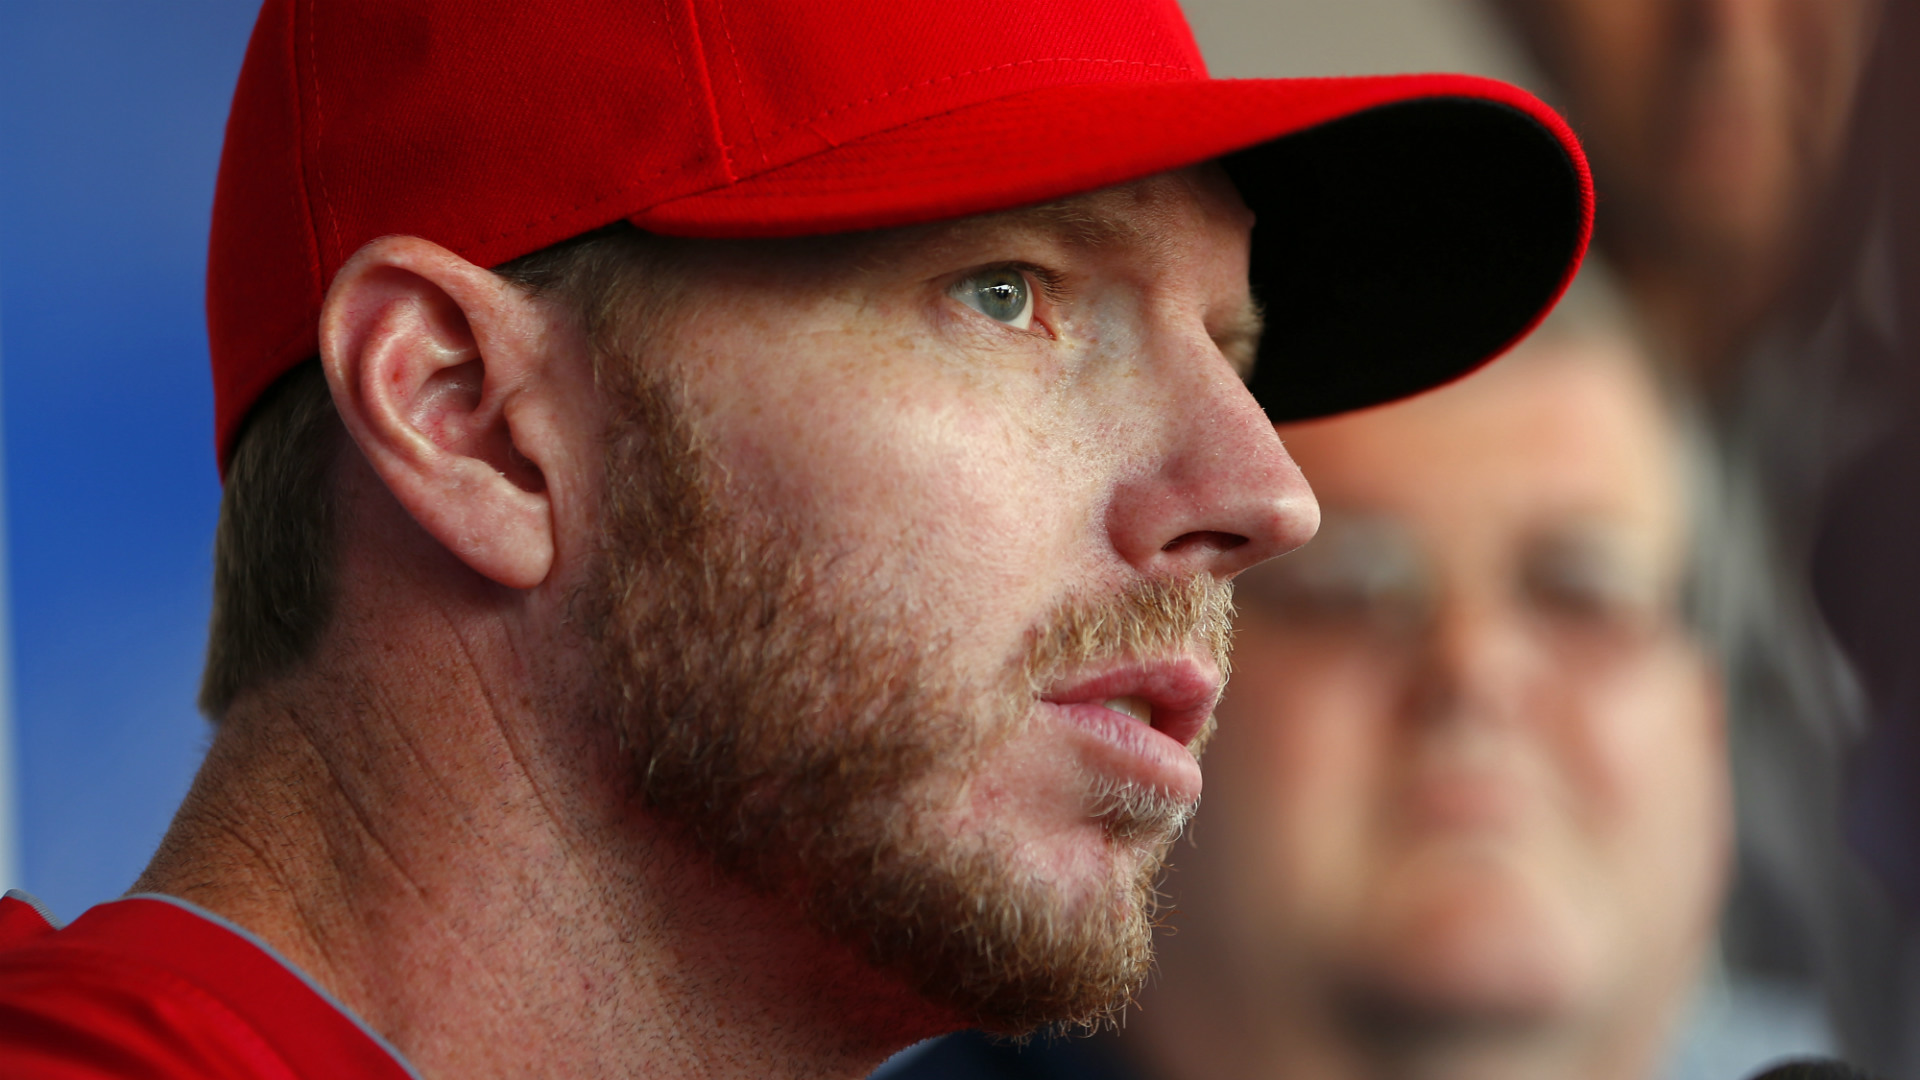 Video shows Roy Halladay's flight pattern moments before plane crash